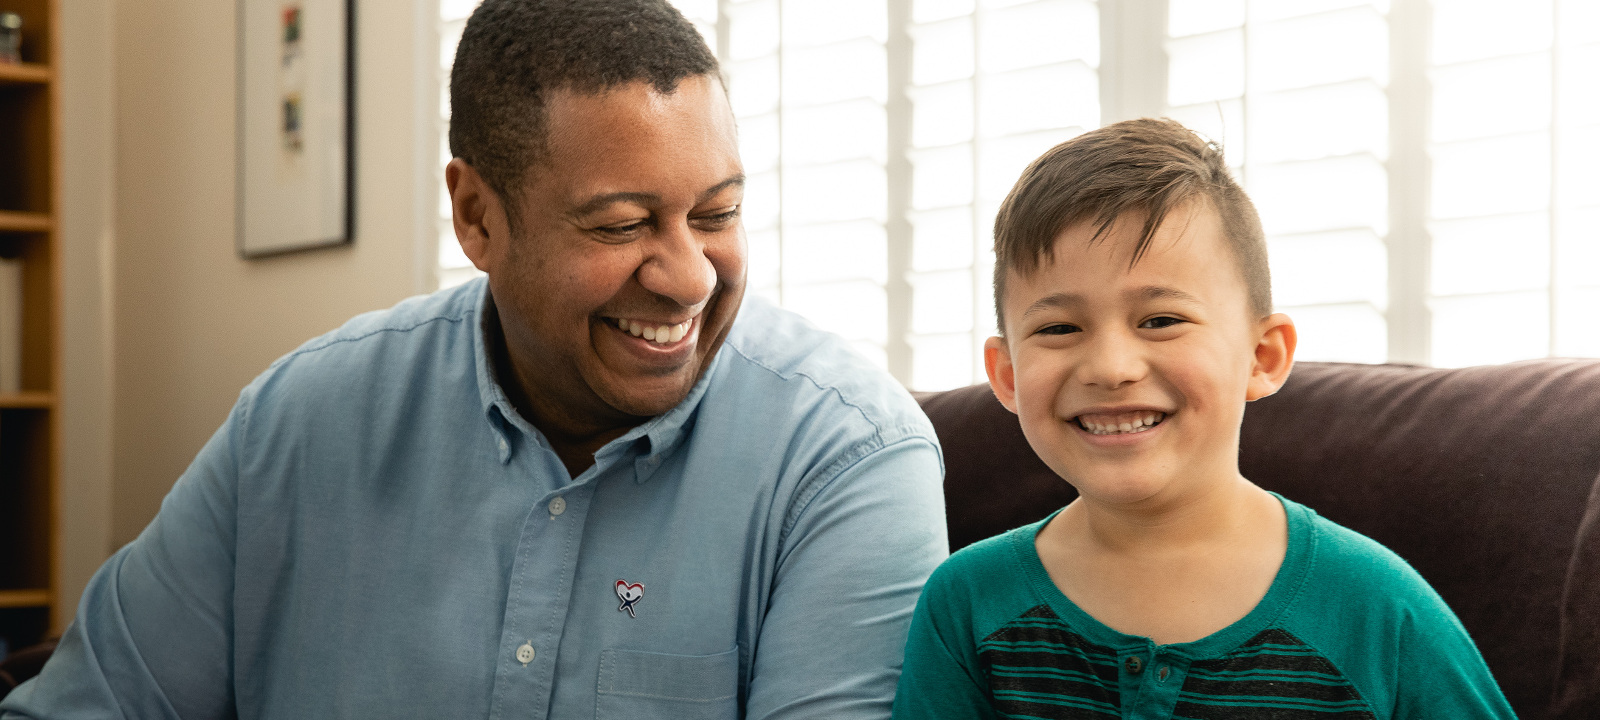 3,818 Kentucky children were supported by a CASA in 2019.